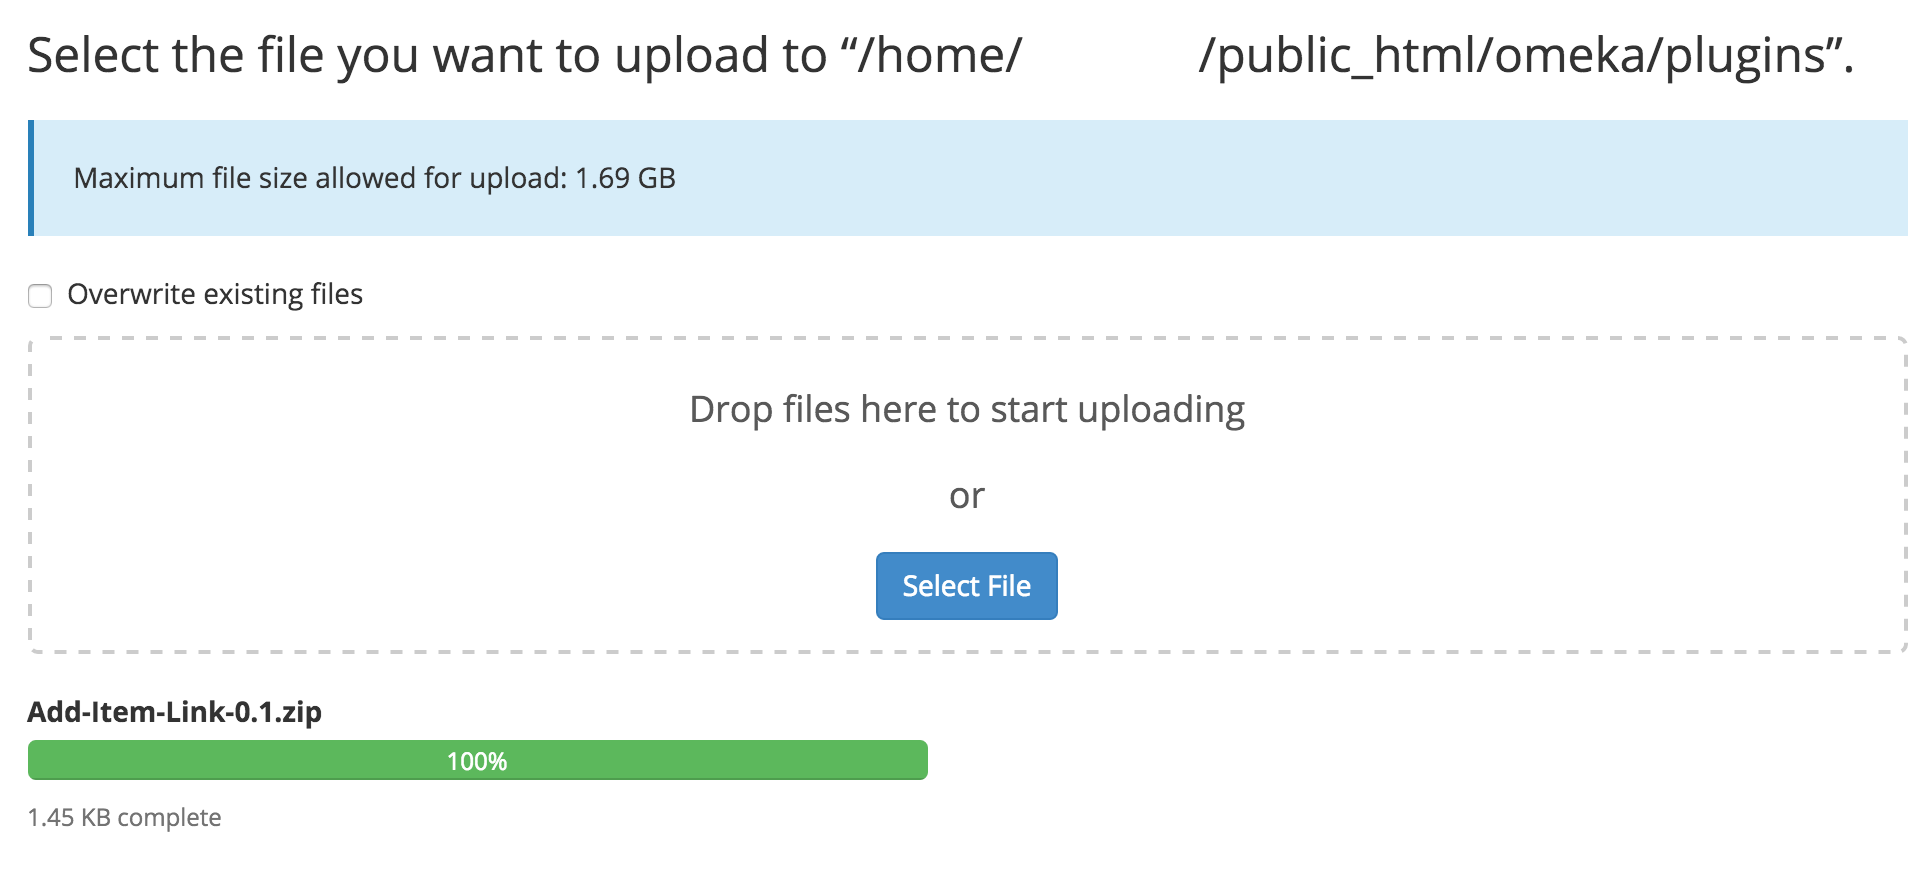 Upload File Interface